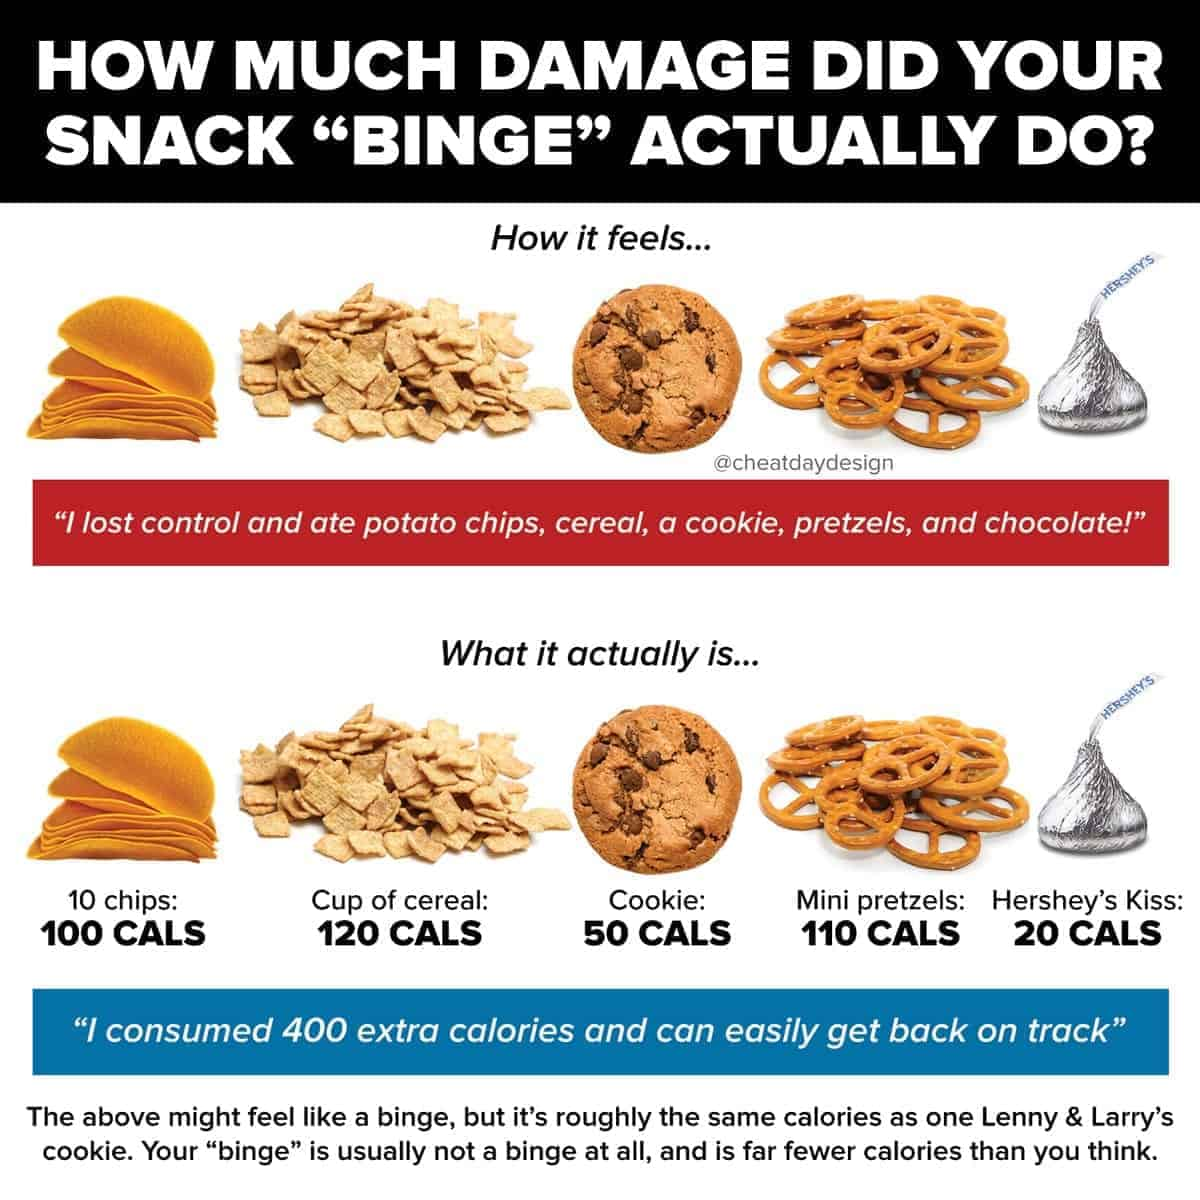 Breaking down how much damage your snack binge actually did